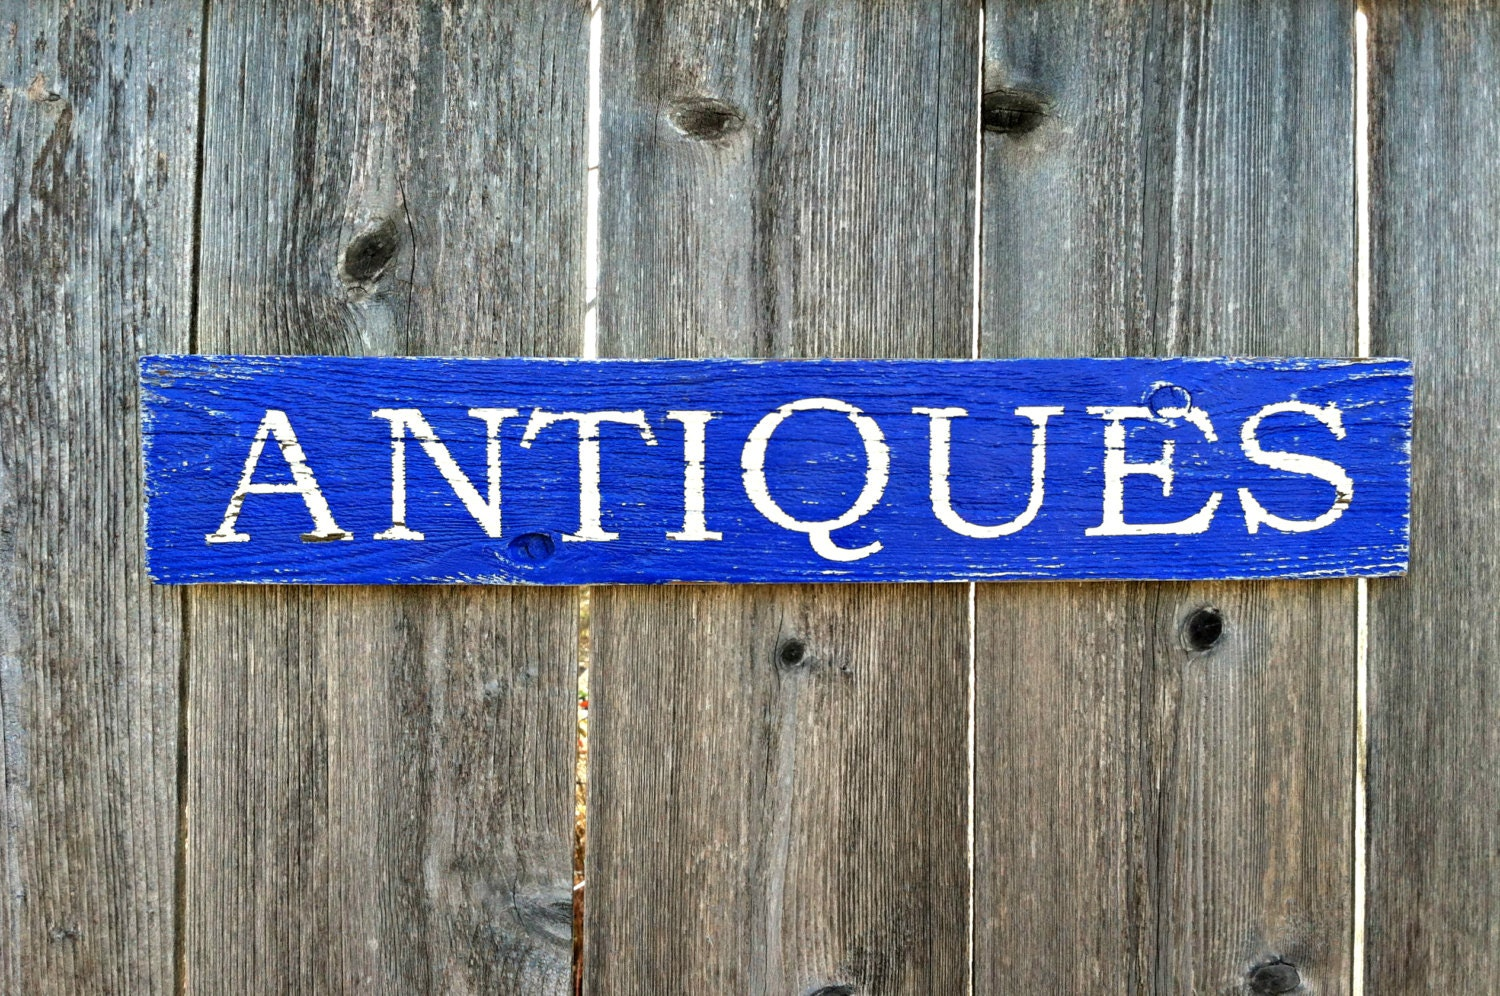 Handmade Rustic Wall Decor : Rustic handmade wall decor antiques wooden sign in